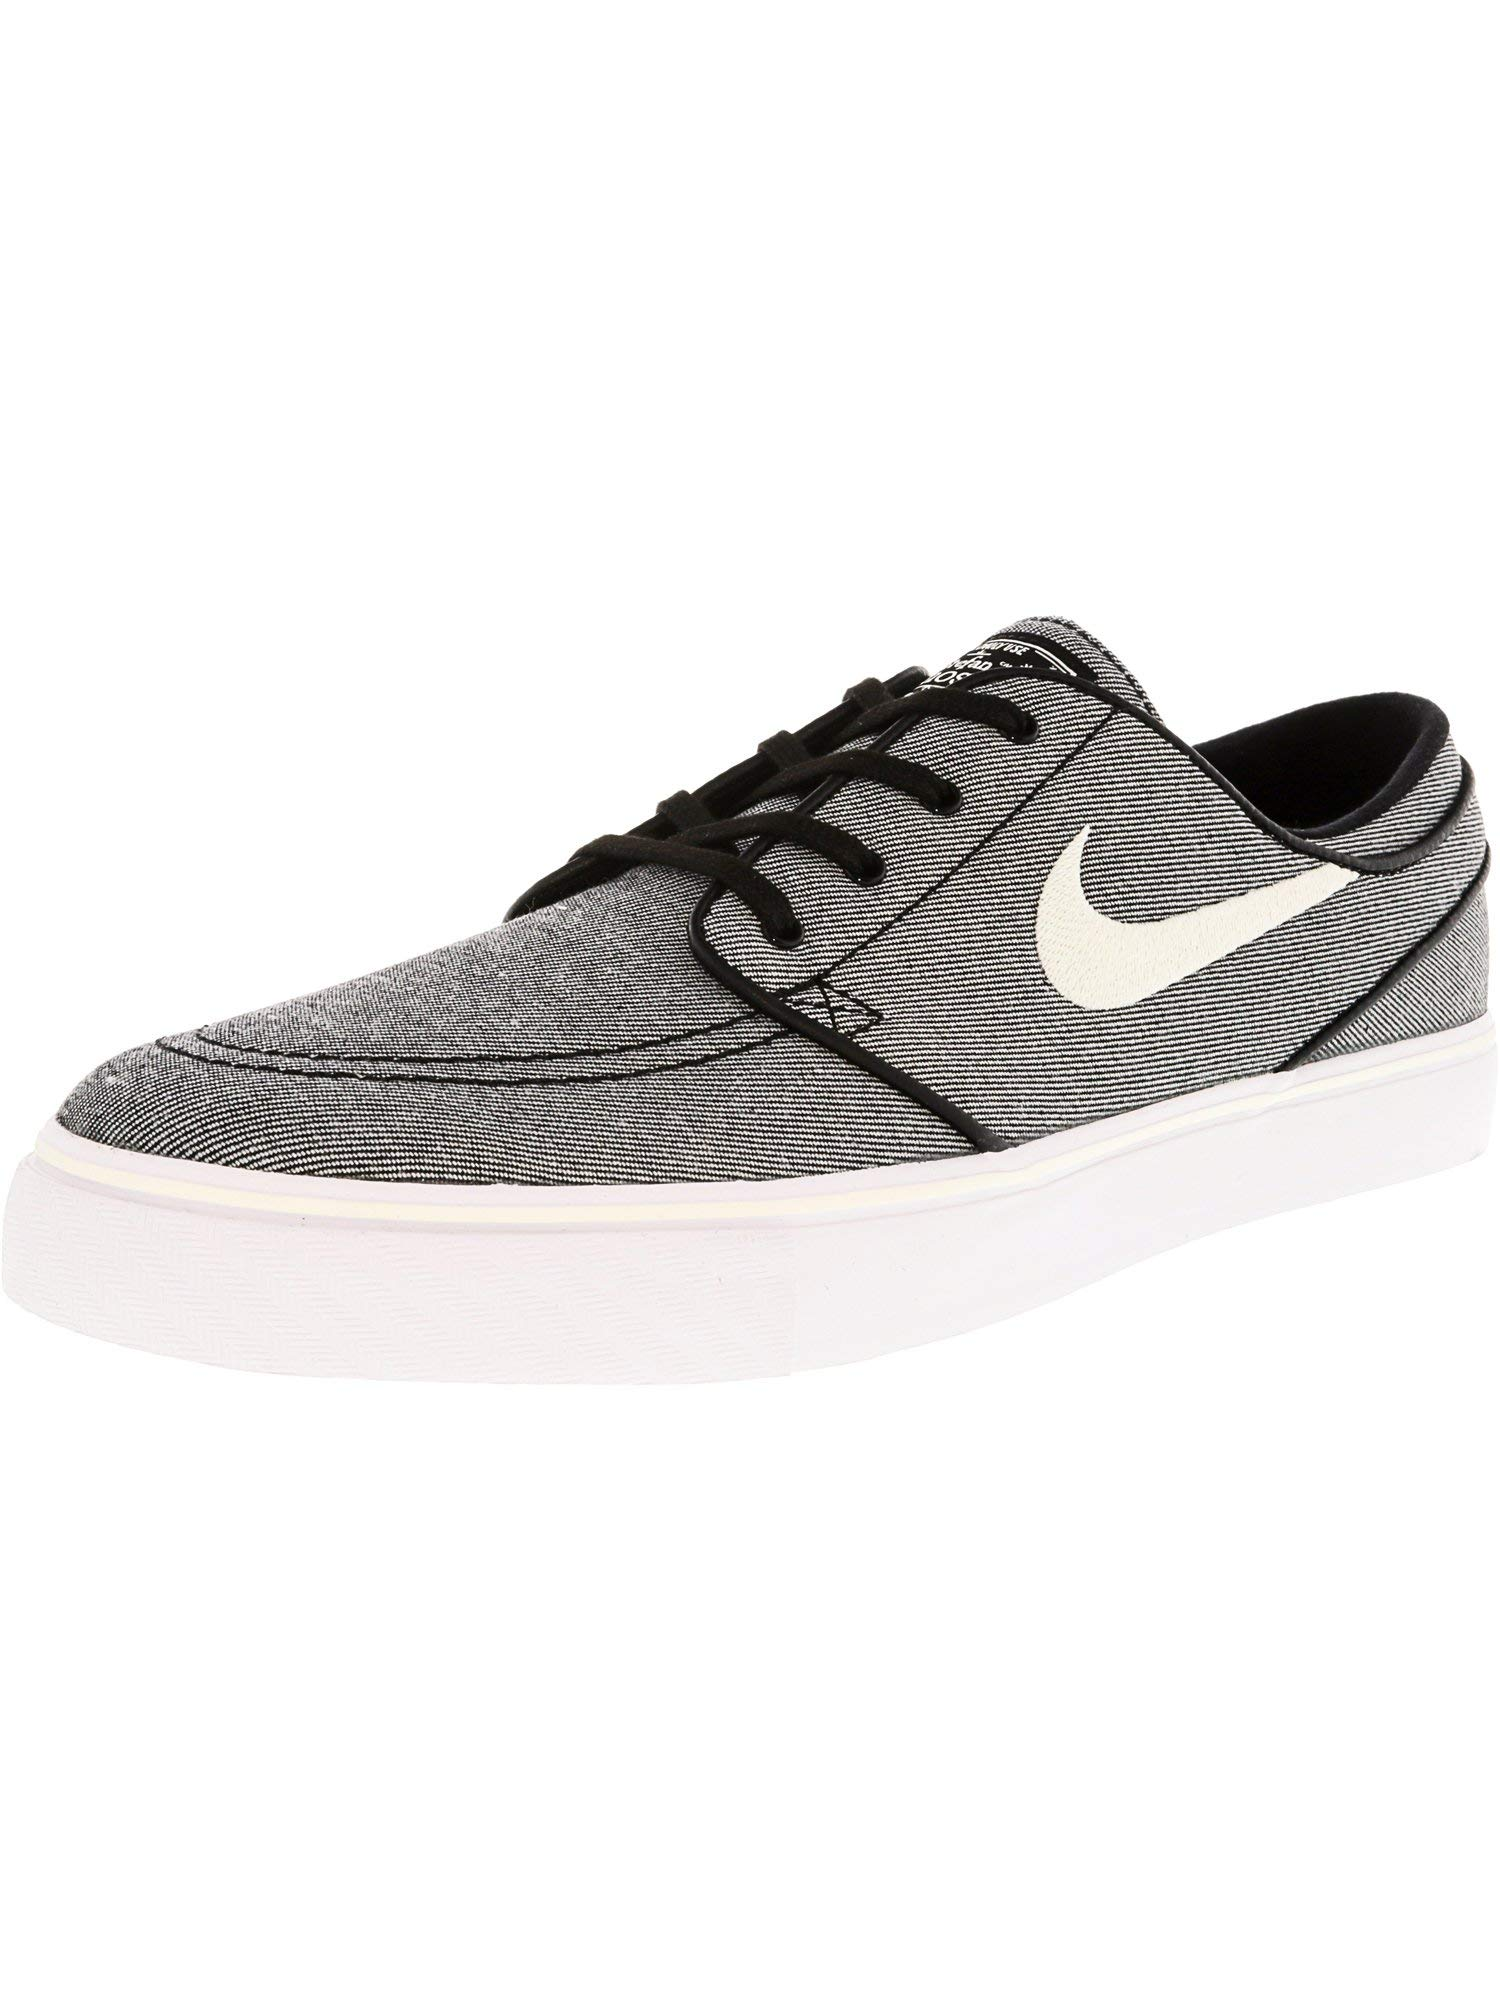 8307c6898501 Galleon - Nike SB Zoom Stefan Janoski Canvas Black